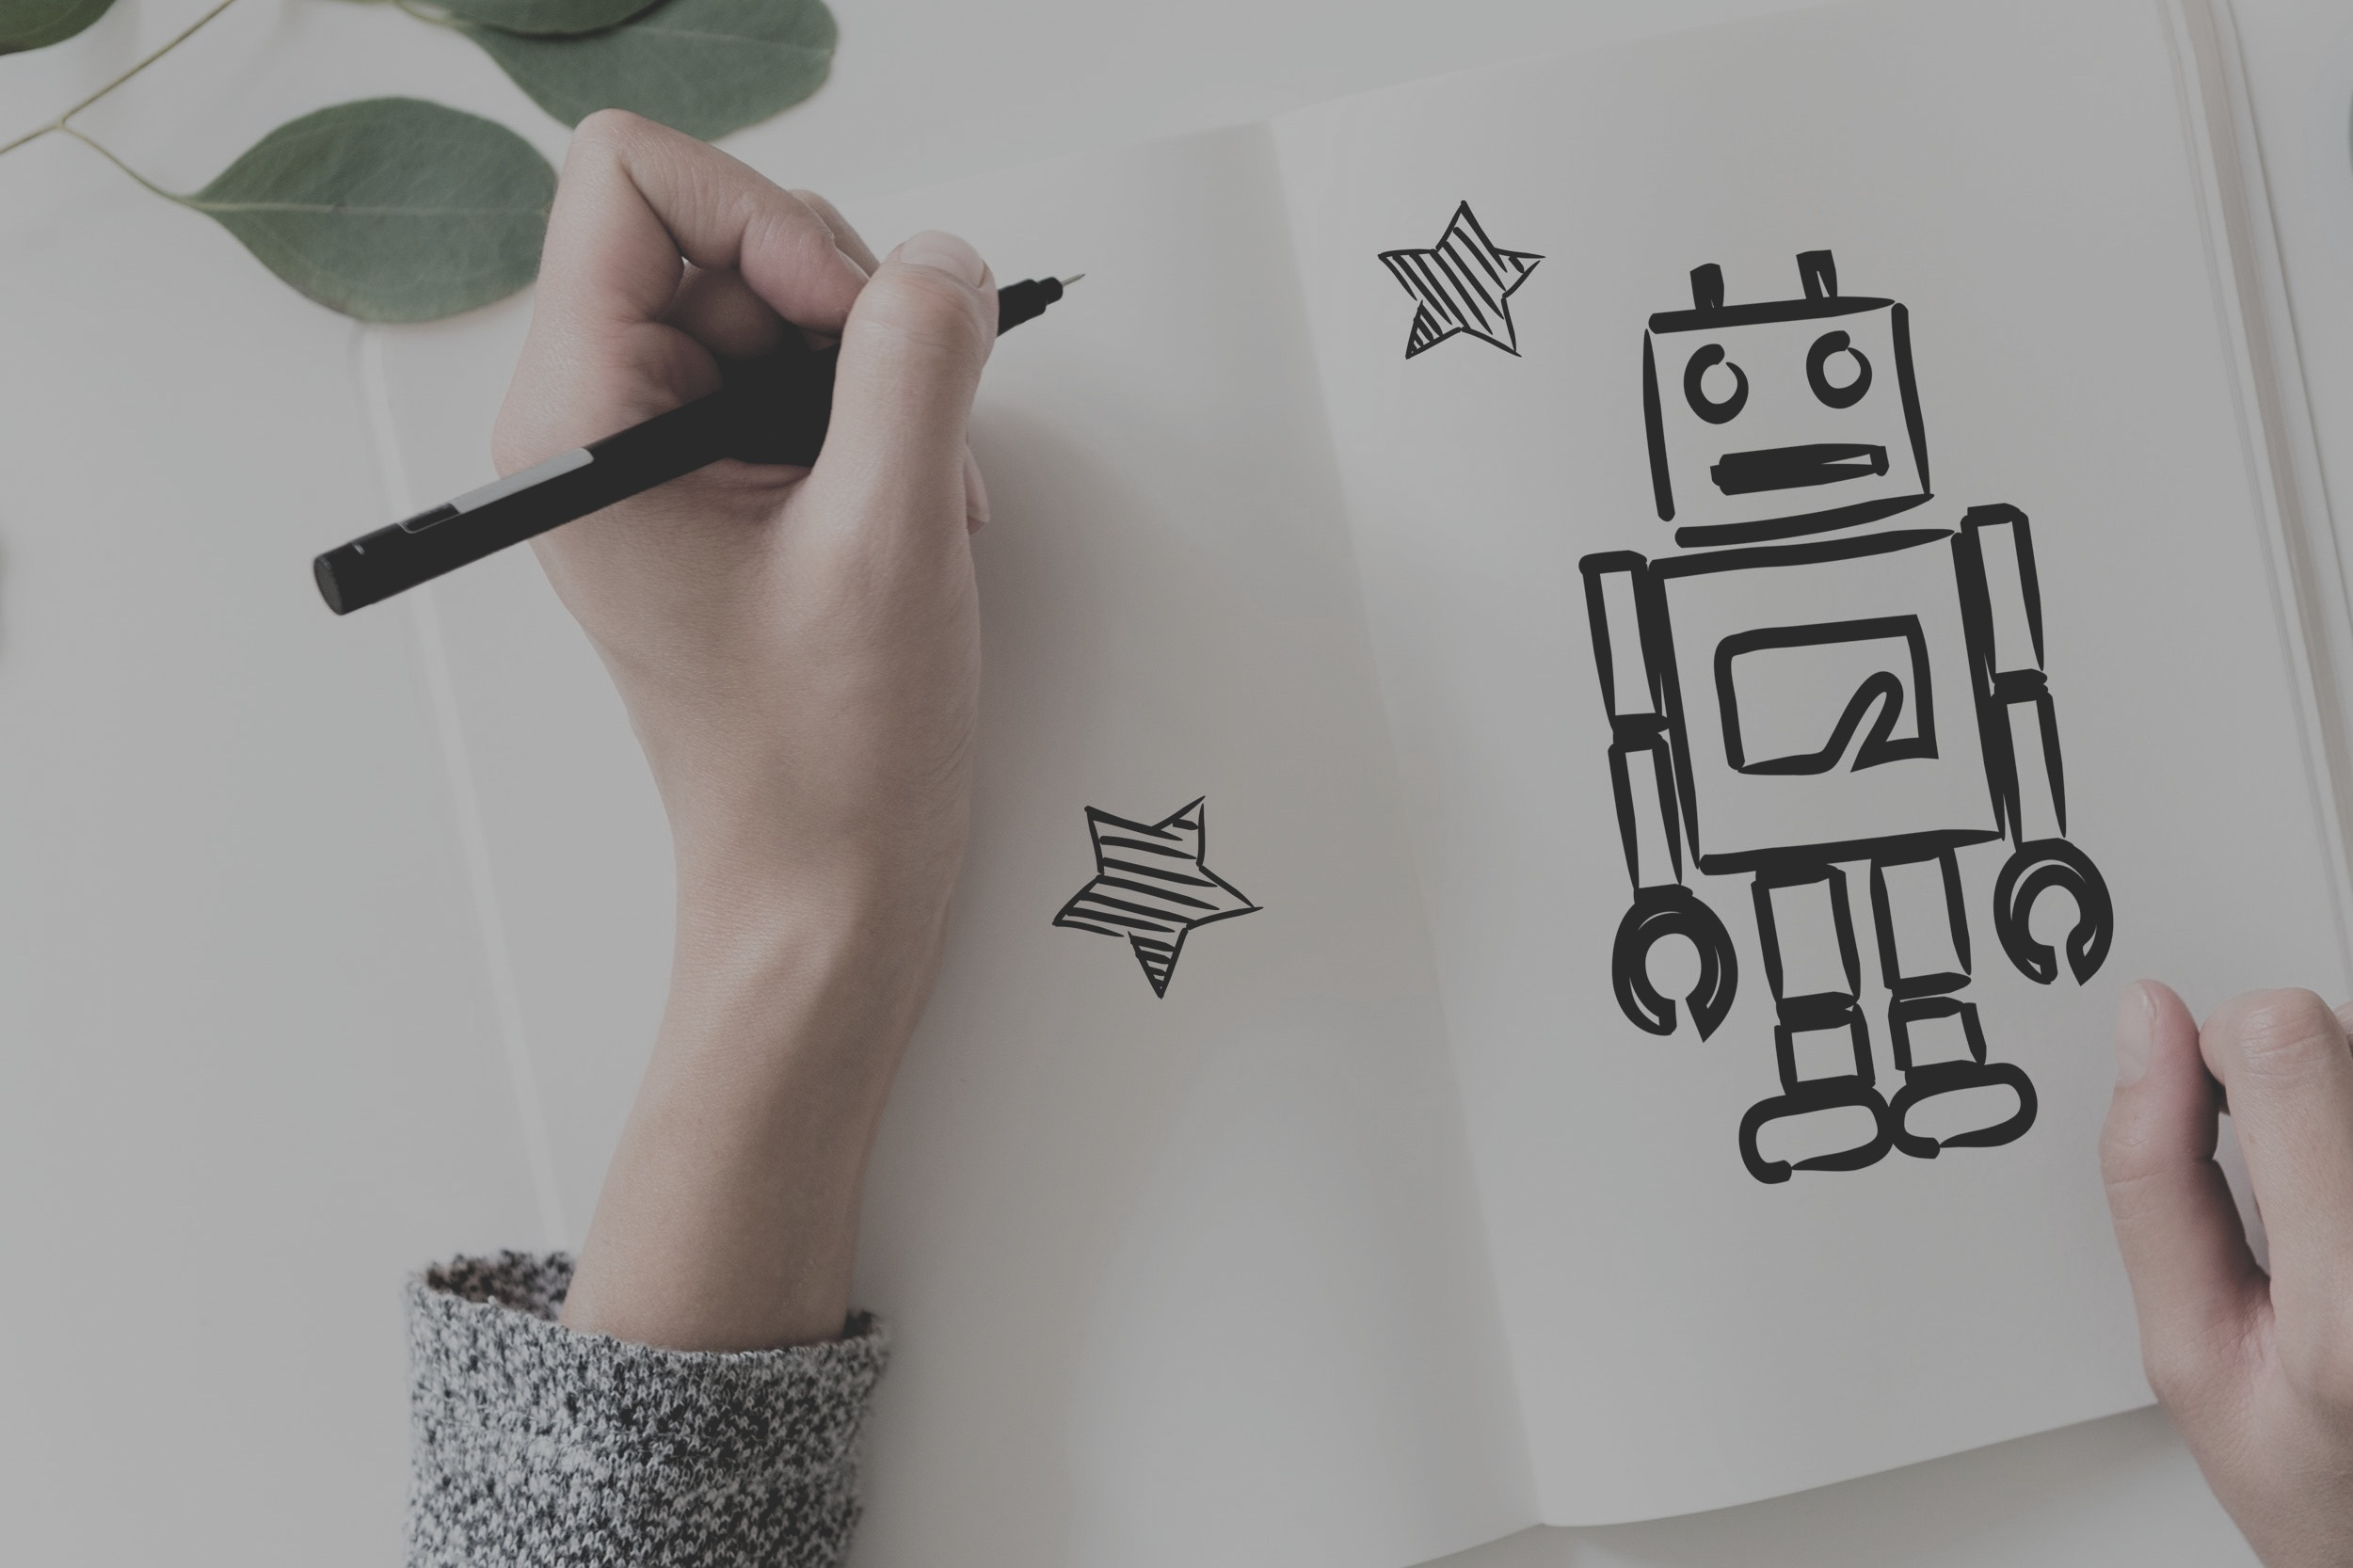 Free Up People's Time, Free Up Financial Capital - Use our library of robots to complete your medium and low complexity tasks. They are reliable, easily trained, and they don't take breaks.